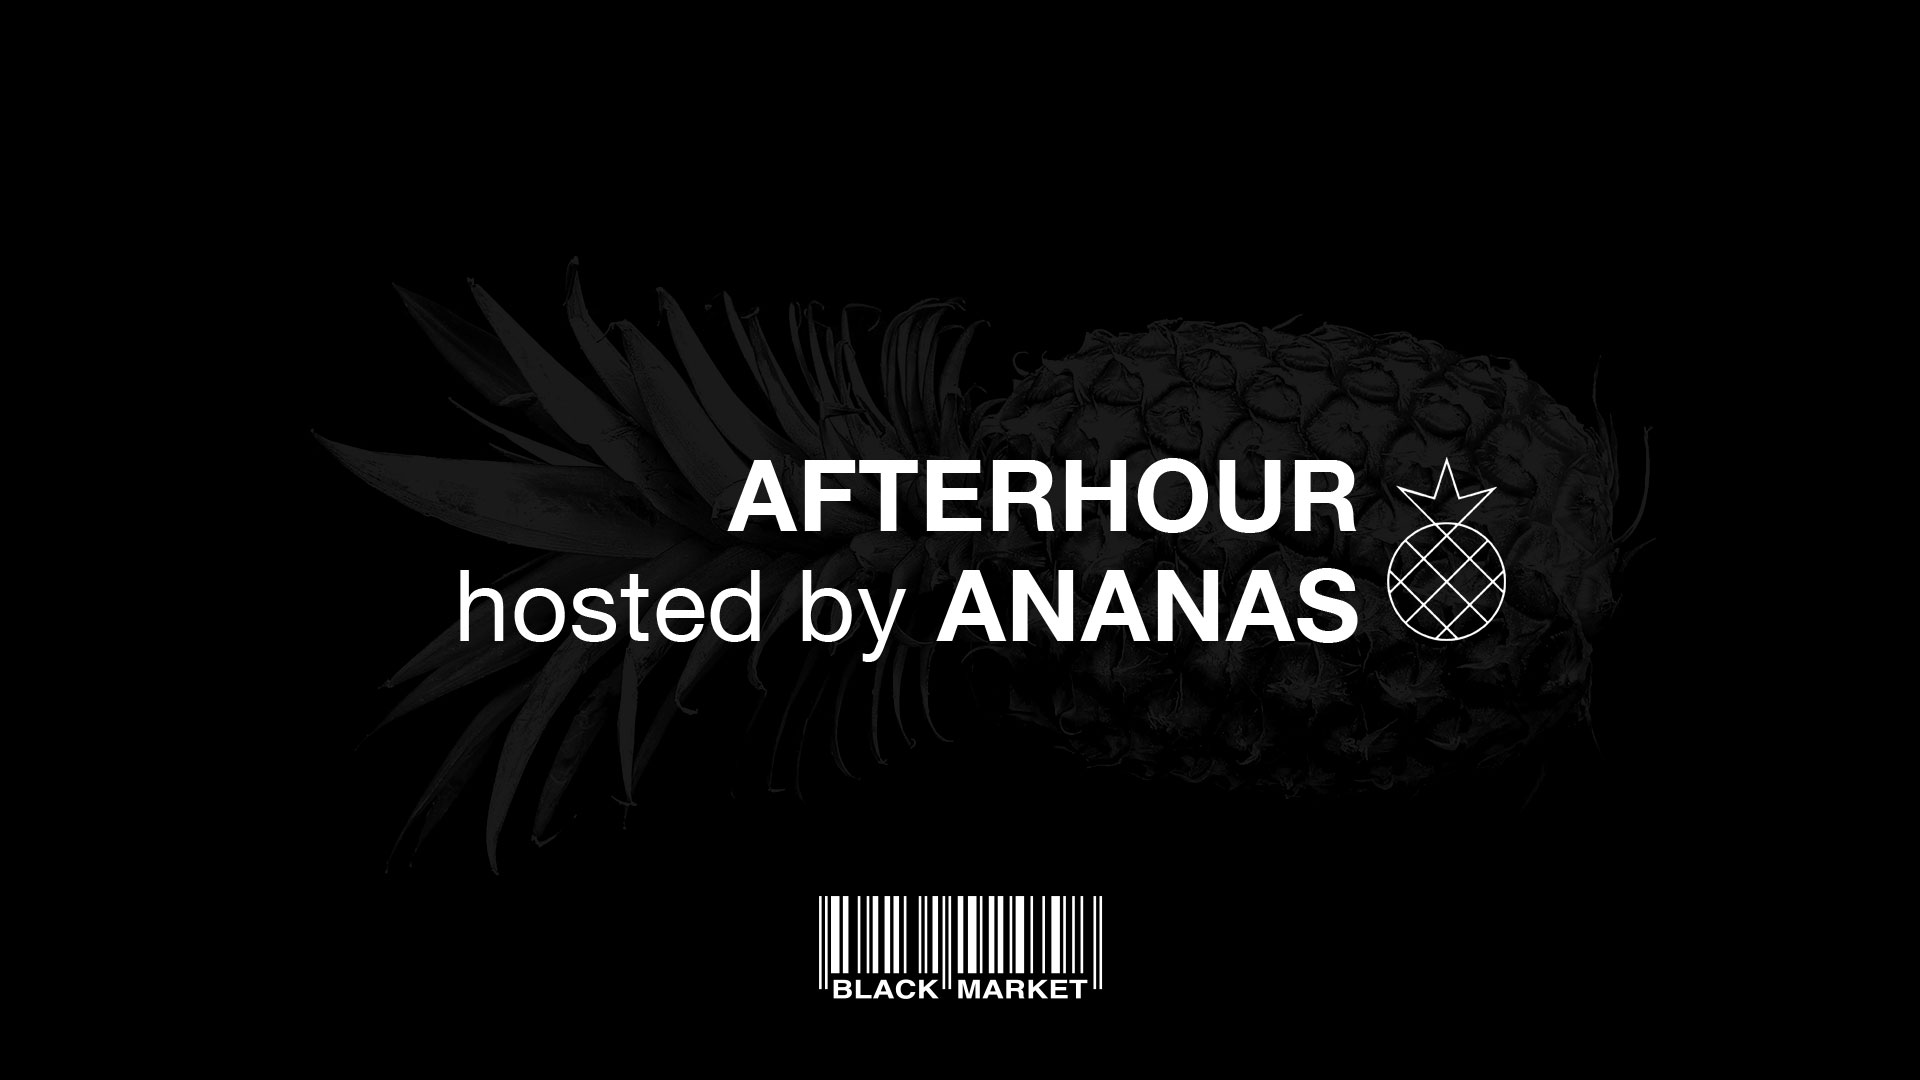 Afterhour w/ Ananas am 14. March 2020 @ Black Market.